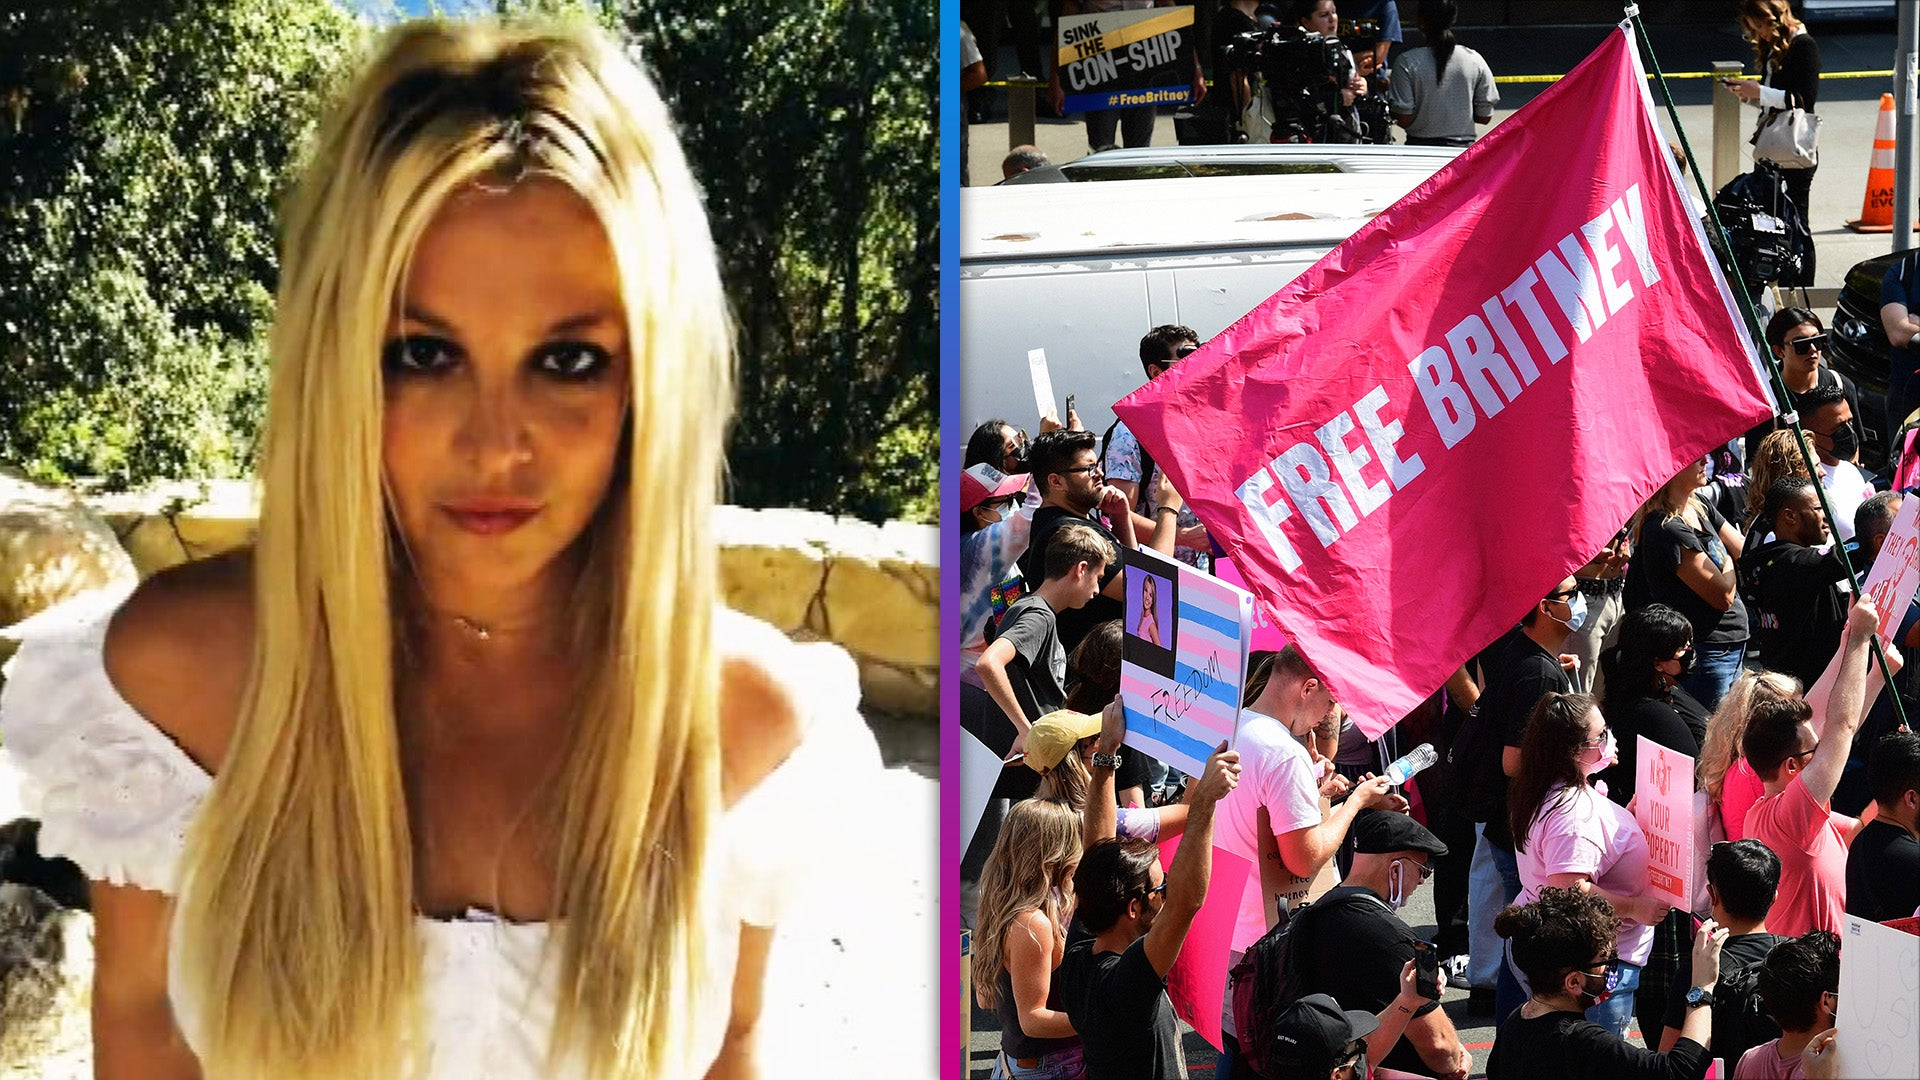 Britney Spears Pays Tribute to #FreeBritney Movement